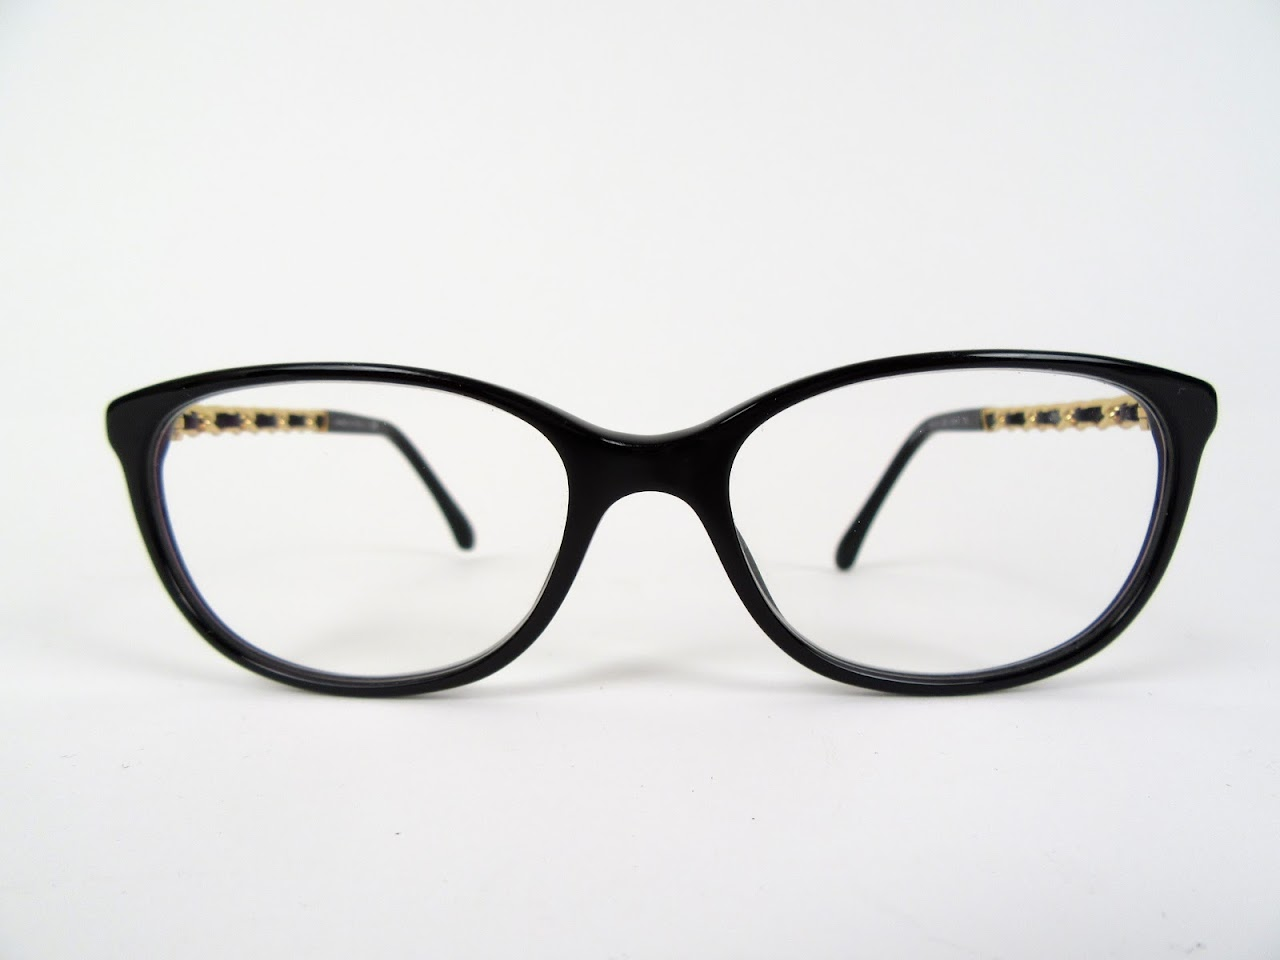 Chanel RX Glasses